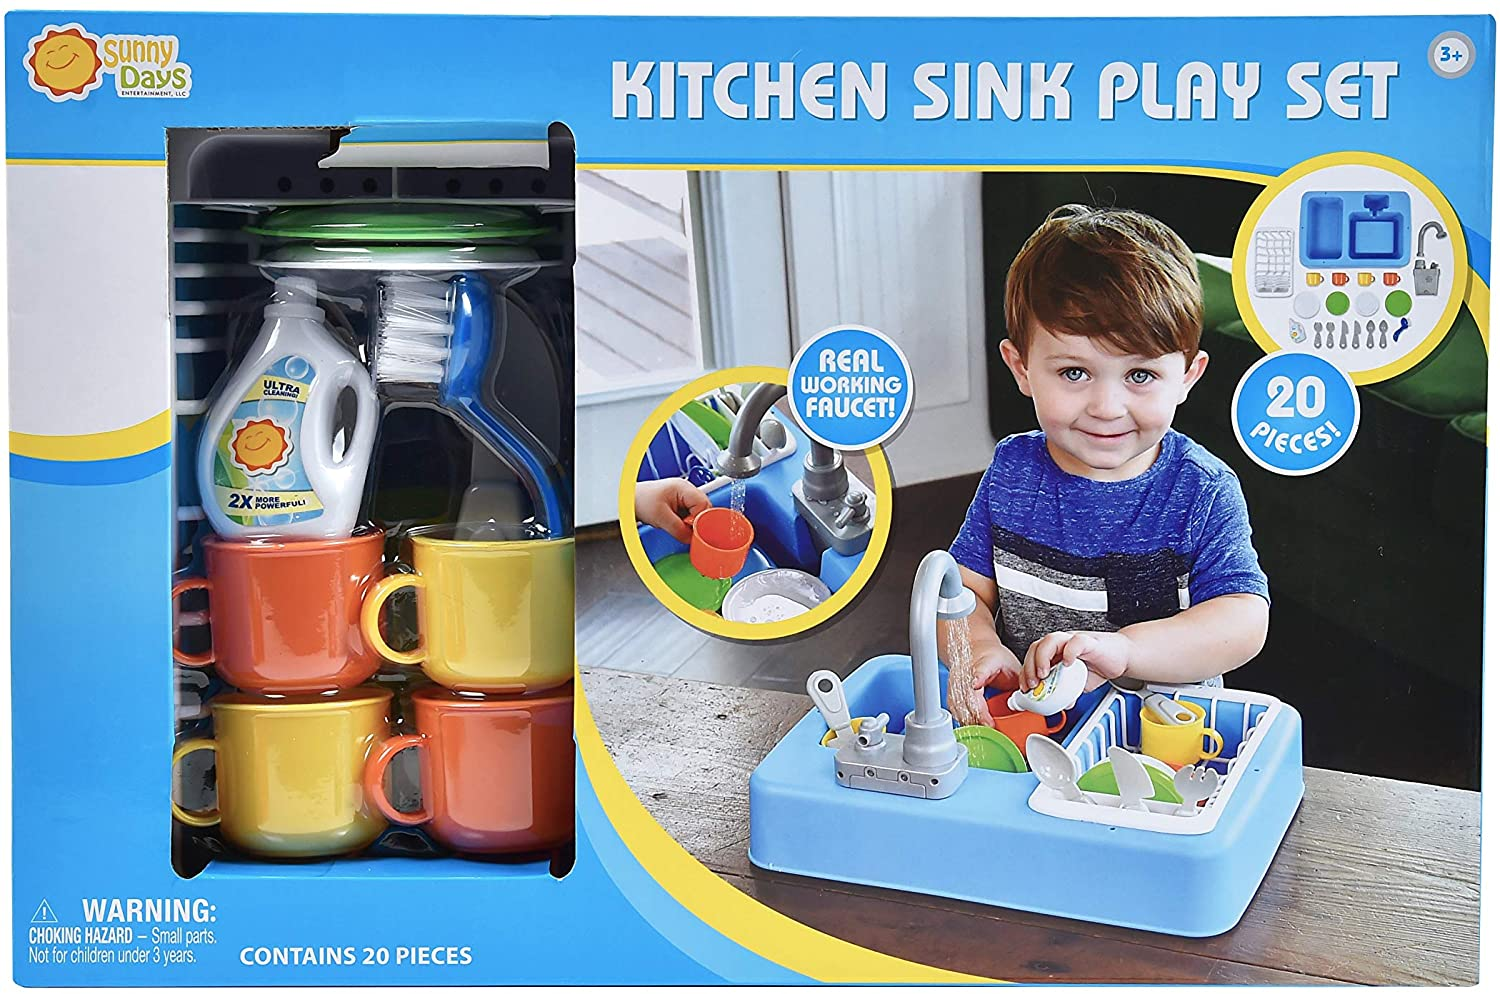 KITCHEN SINK PLAY SET WITH REAL WORKING FAUCET